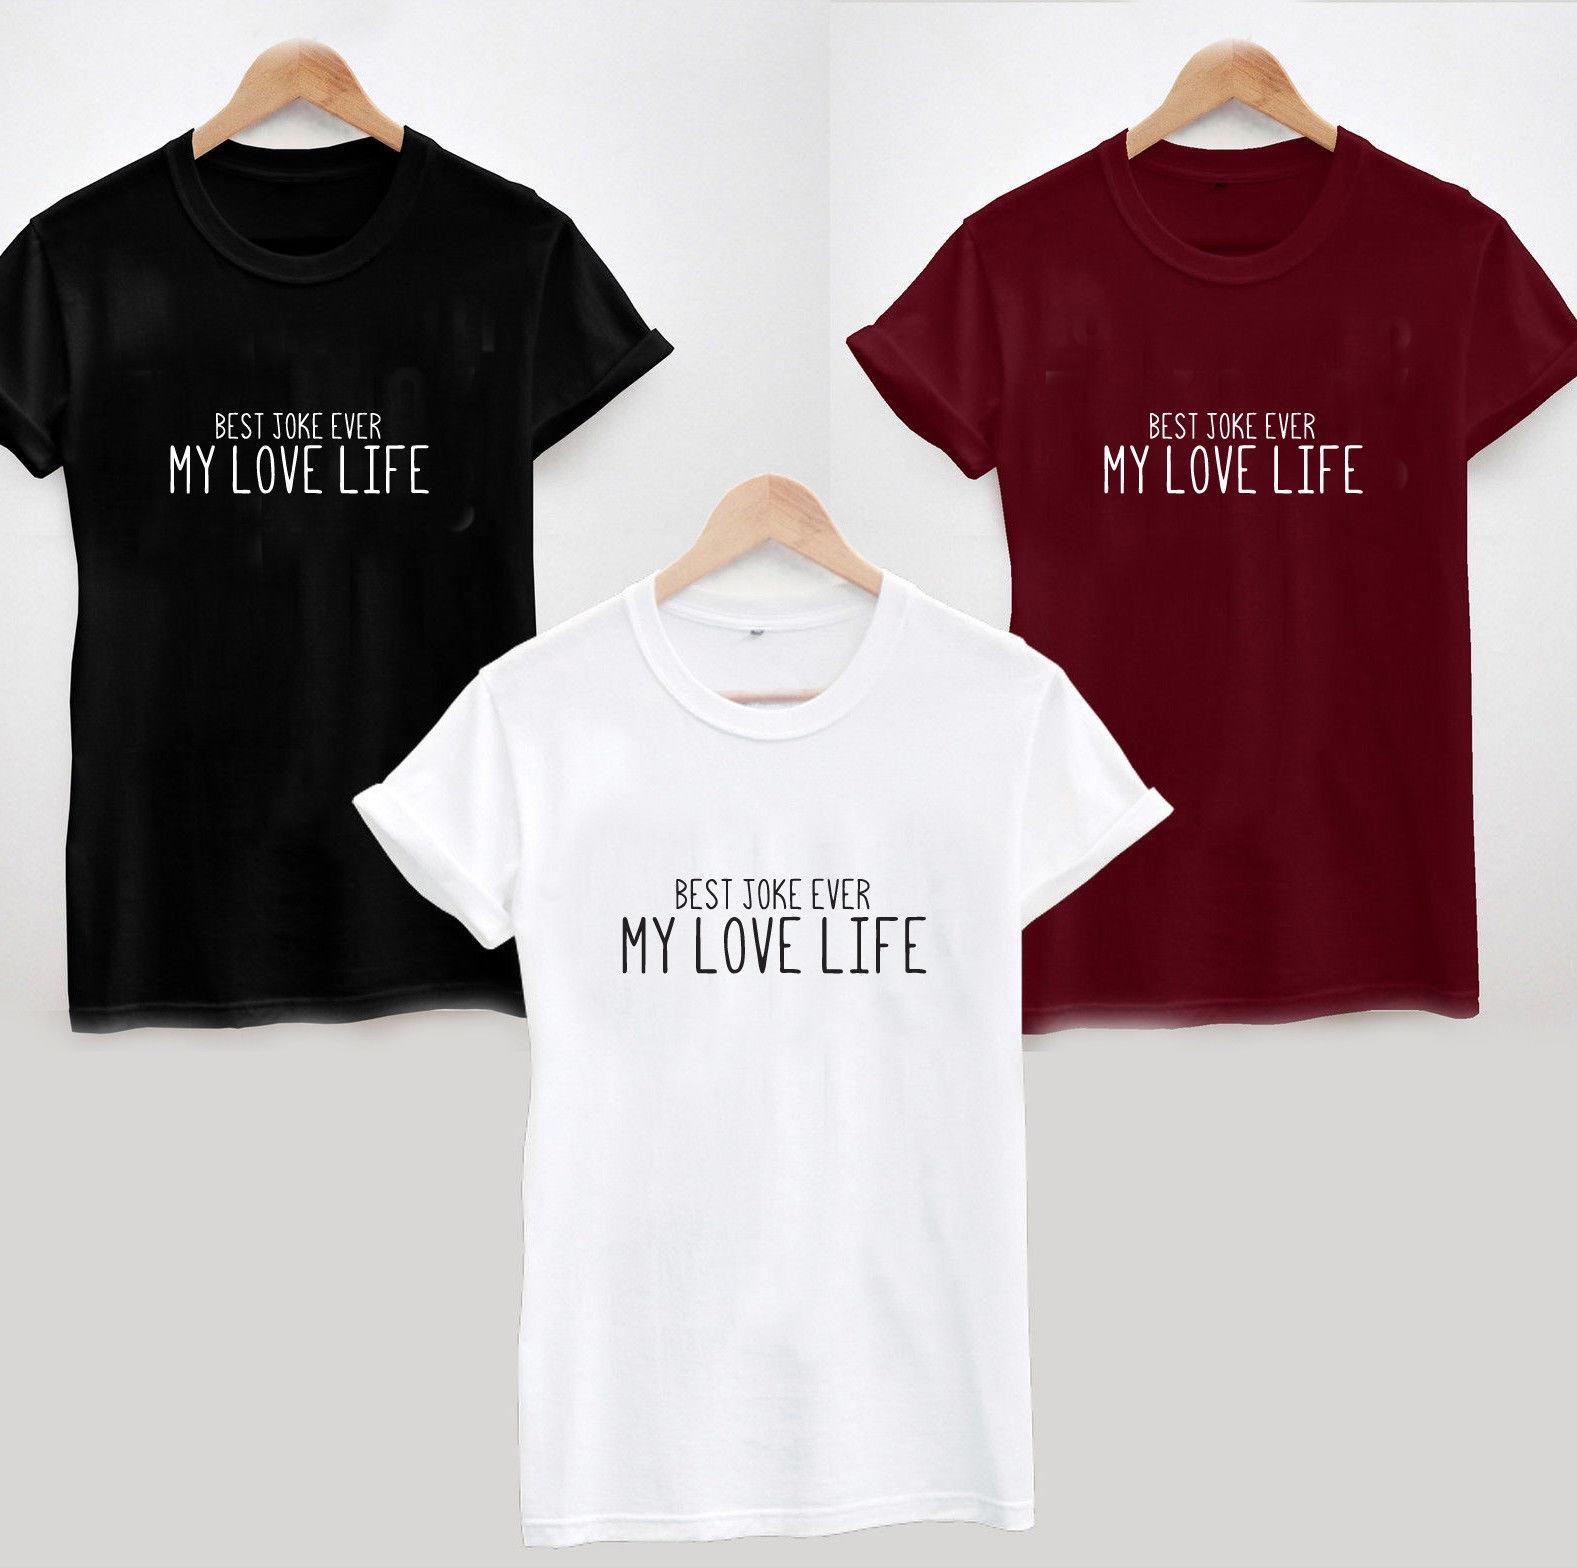 e19ff49b BEST JOKE EVER MY LOVE LIFE T SHIRT CUTE FUNNY SARCASTIC TRUE LADIES UNISEX  Awesome T Shirts For Men T Shirts Shopping Online From Ppcup, $16.24|  DHgate.Com